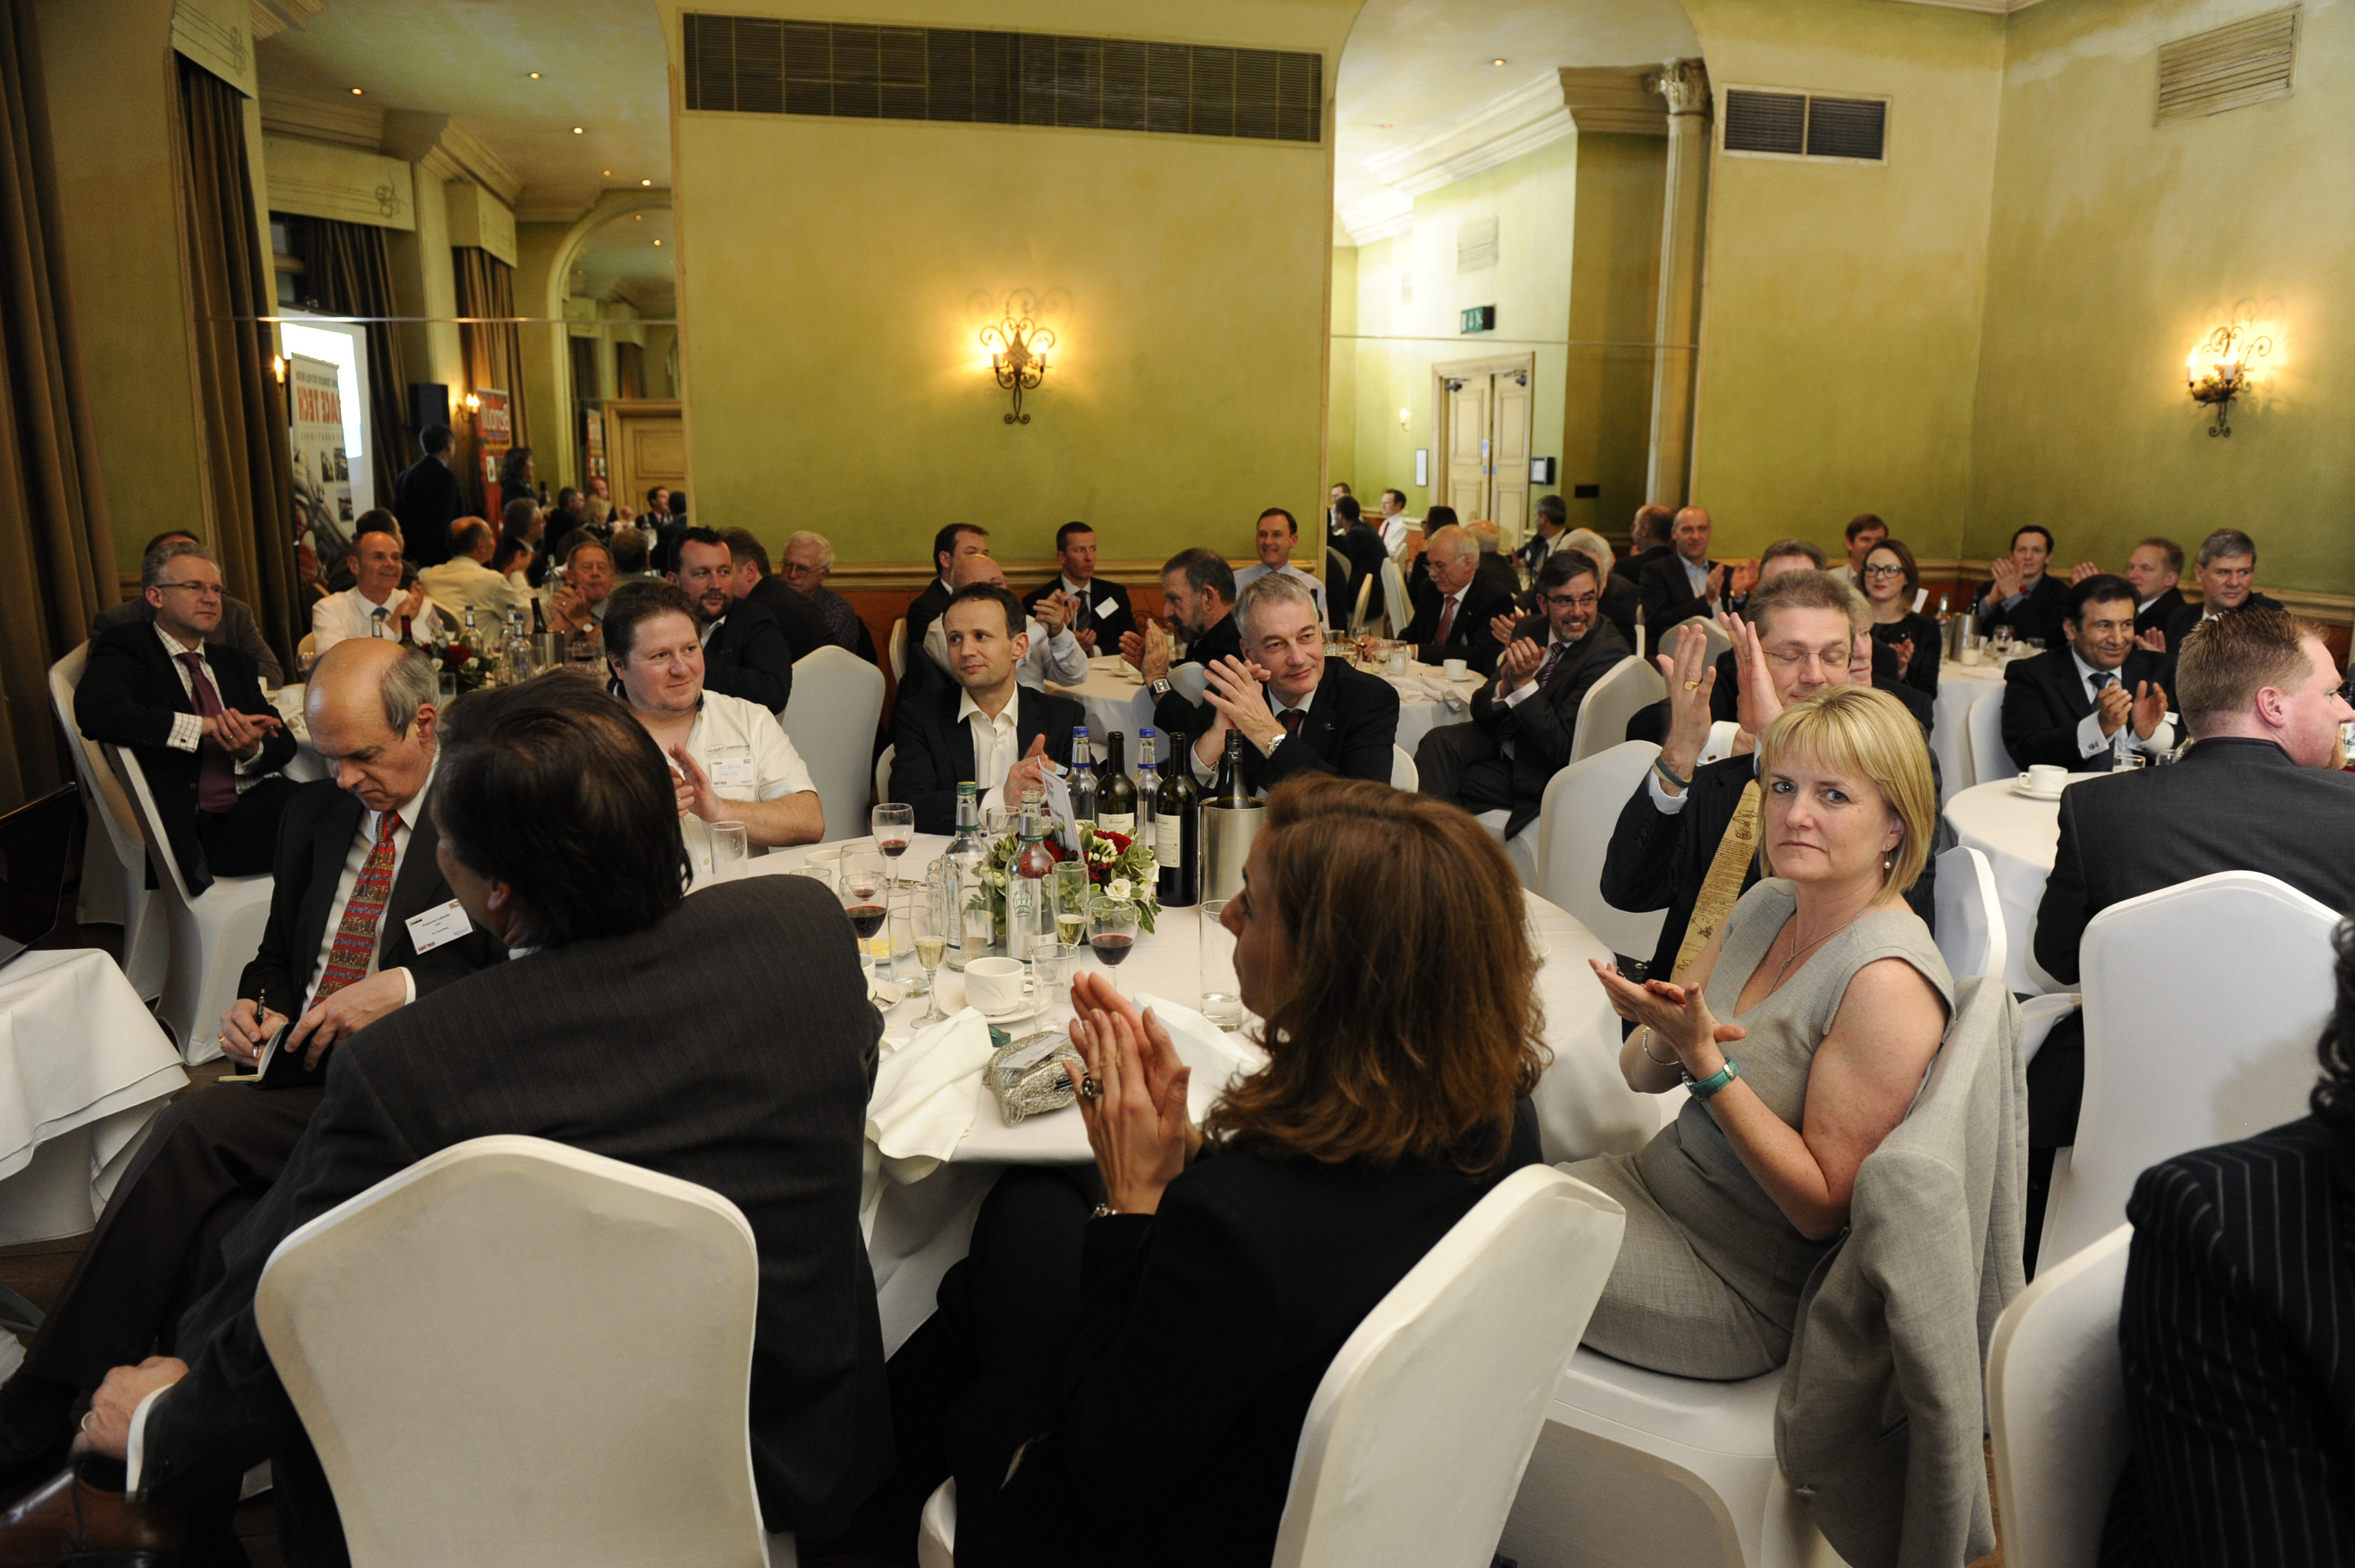 The Networking Awards dinner